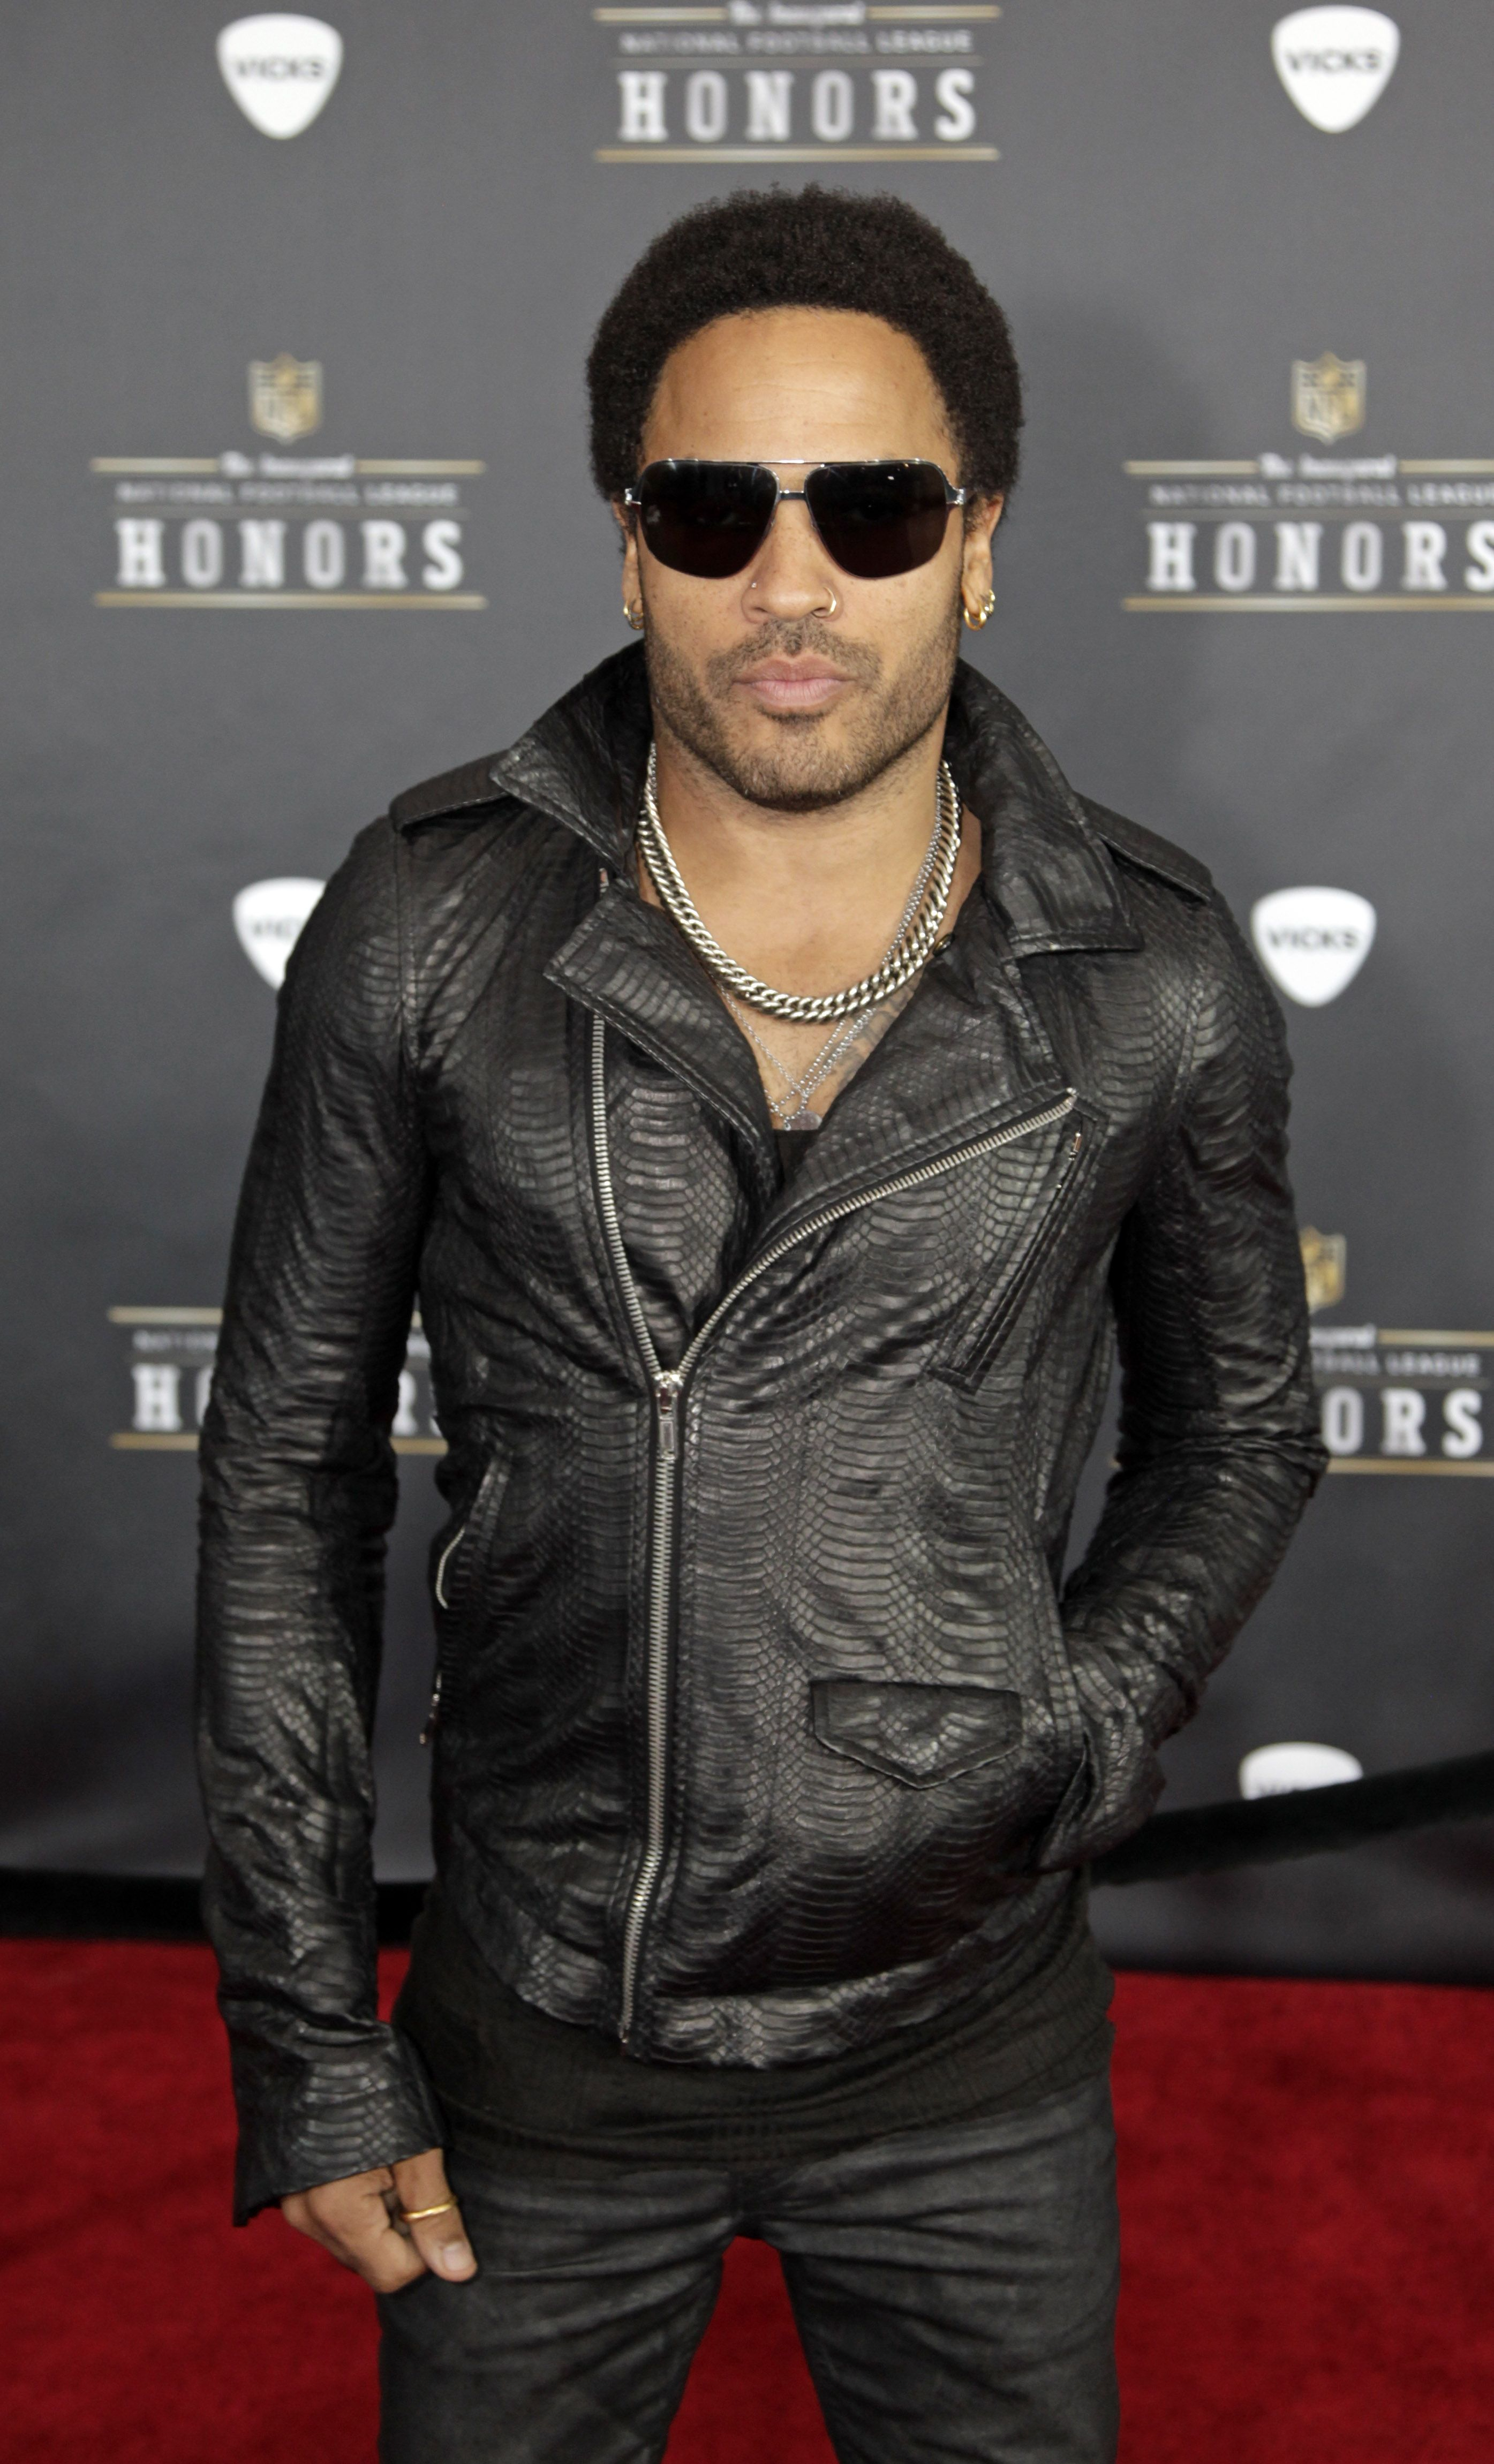 Lenny kravitz pants tear bing images - Lenny Kravitz